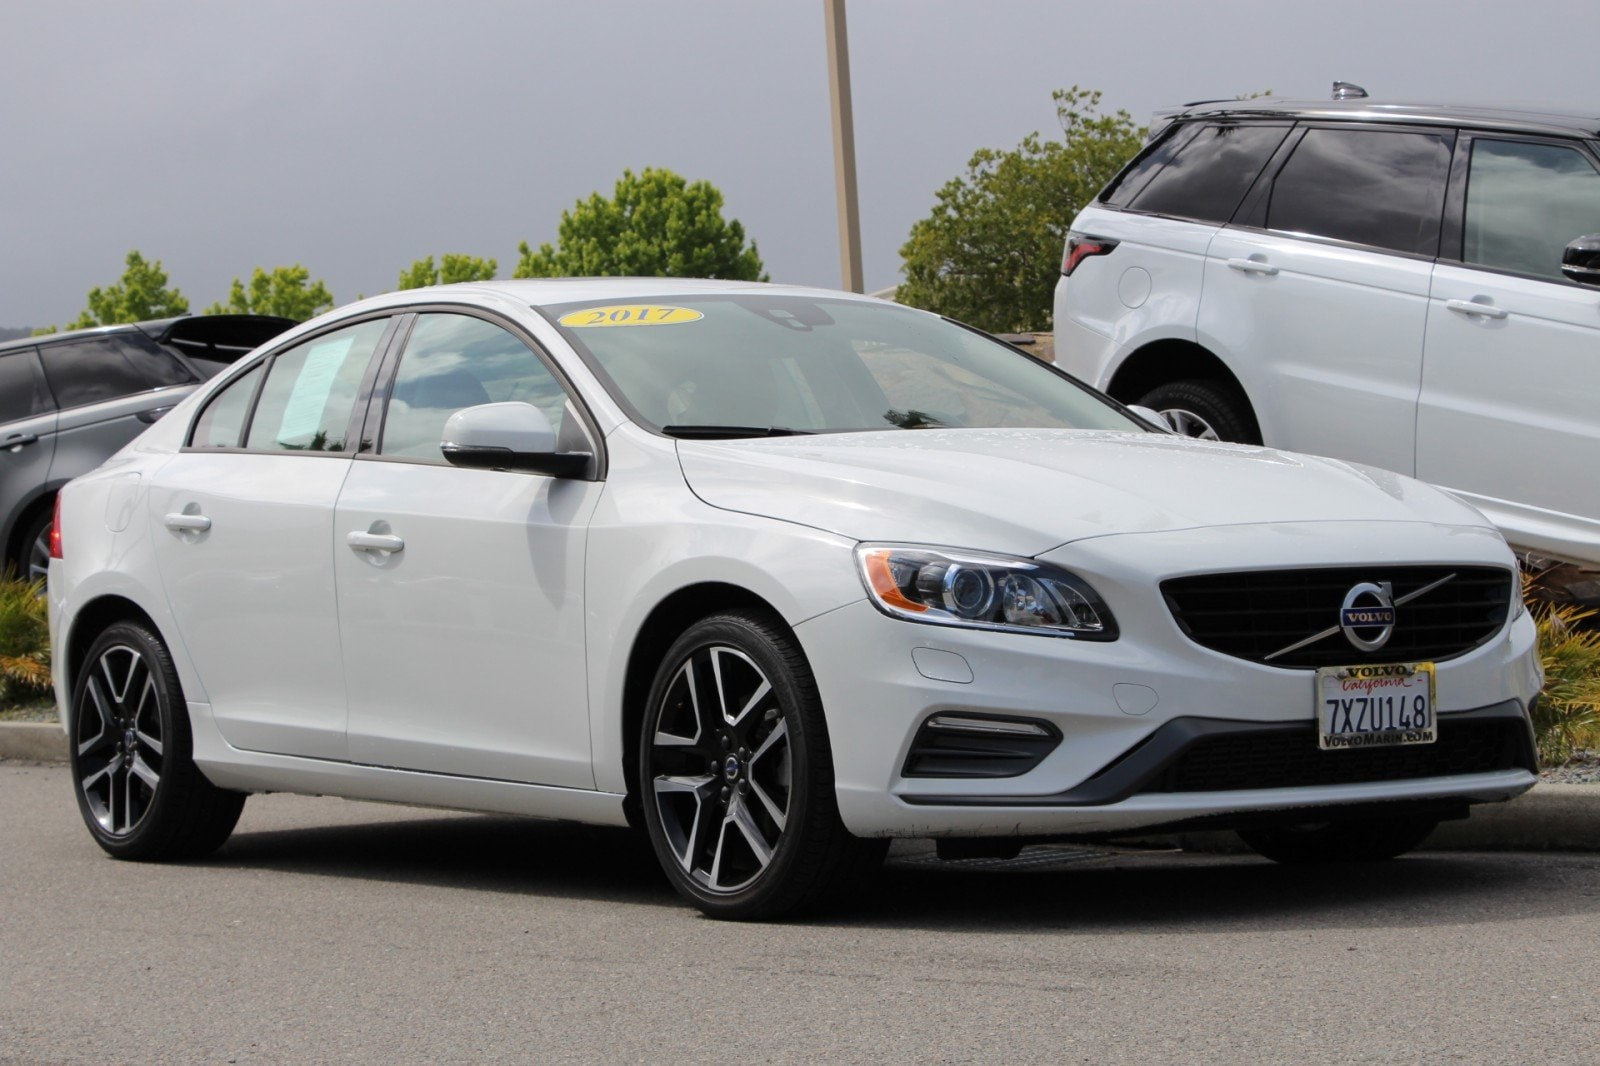 Pre-Owned 2017 Volvo S60 T5 FWD Dynamic Sedan 17126XL in Corte Madera, CA